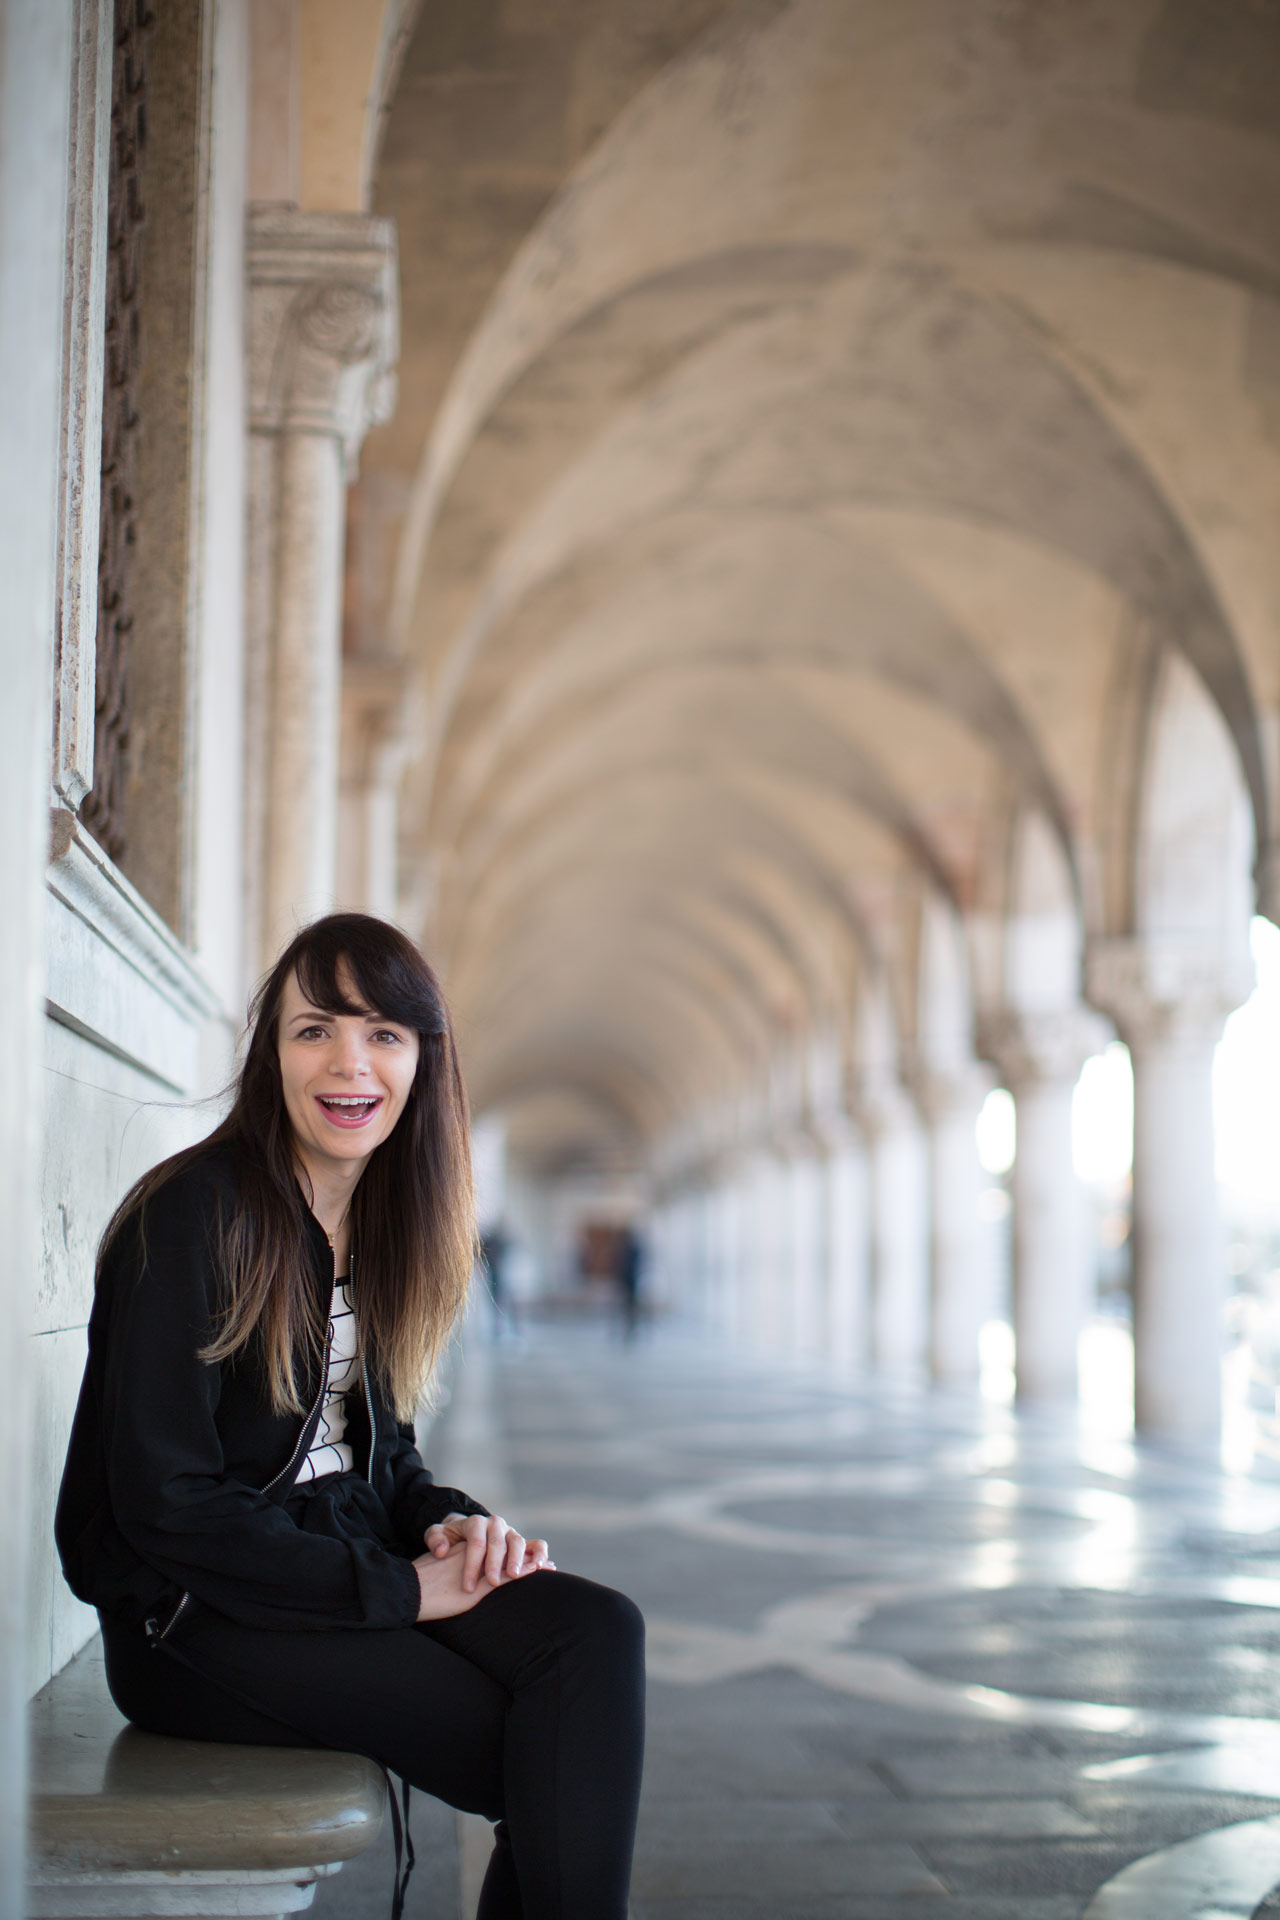 Ashley-portrait-photo-shooting-sunrise-palazzo-ducale-Venezia-Venice